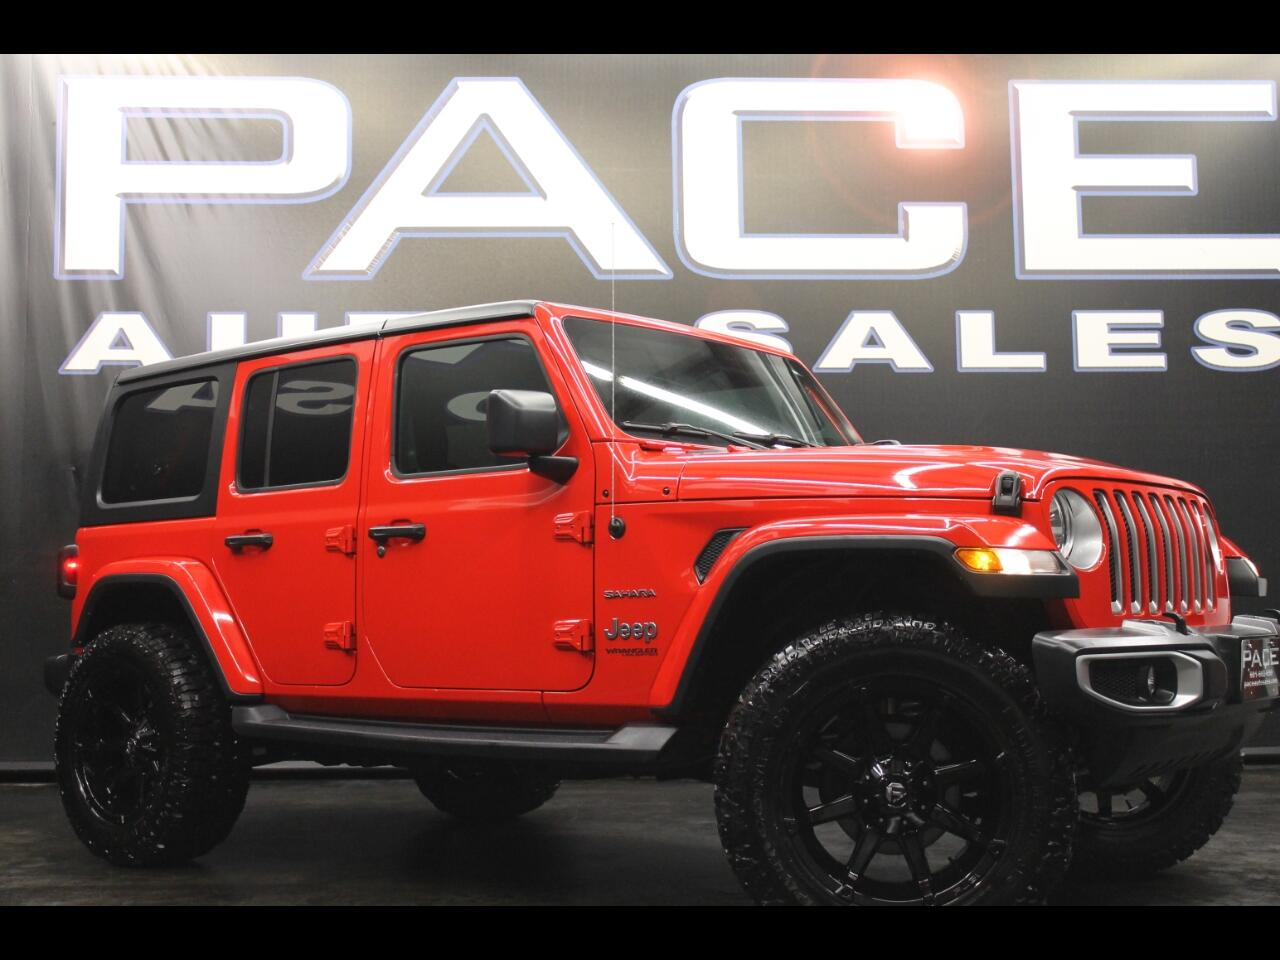 2018 Jeep Wrangler Unlimited Sahara 4x4 Lifted Custom